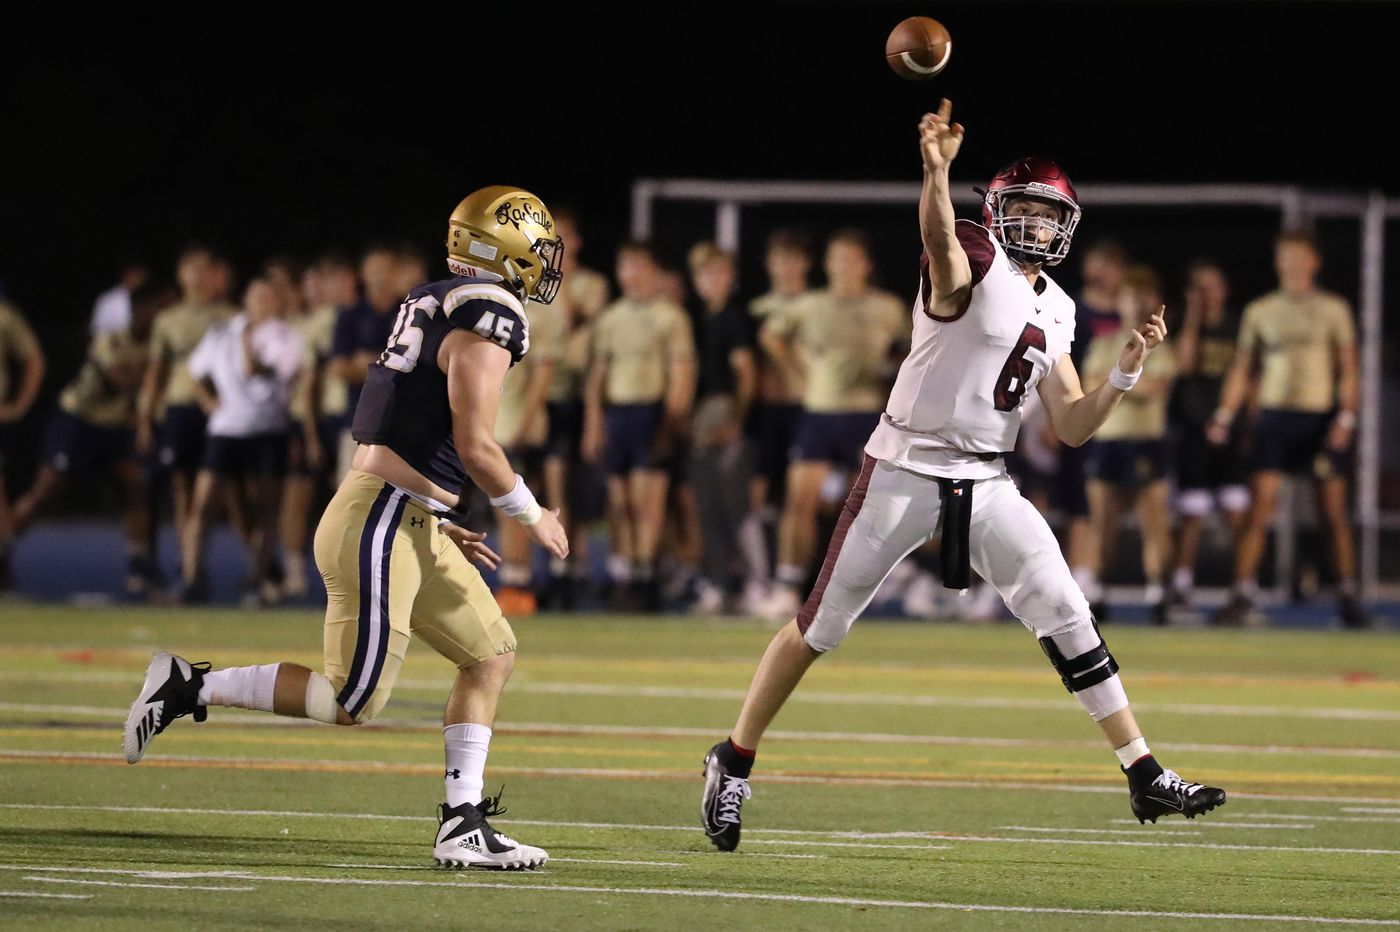 Four Philly area Catholic schools proceed with three fall sports, with football still uncertain